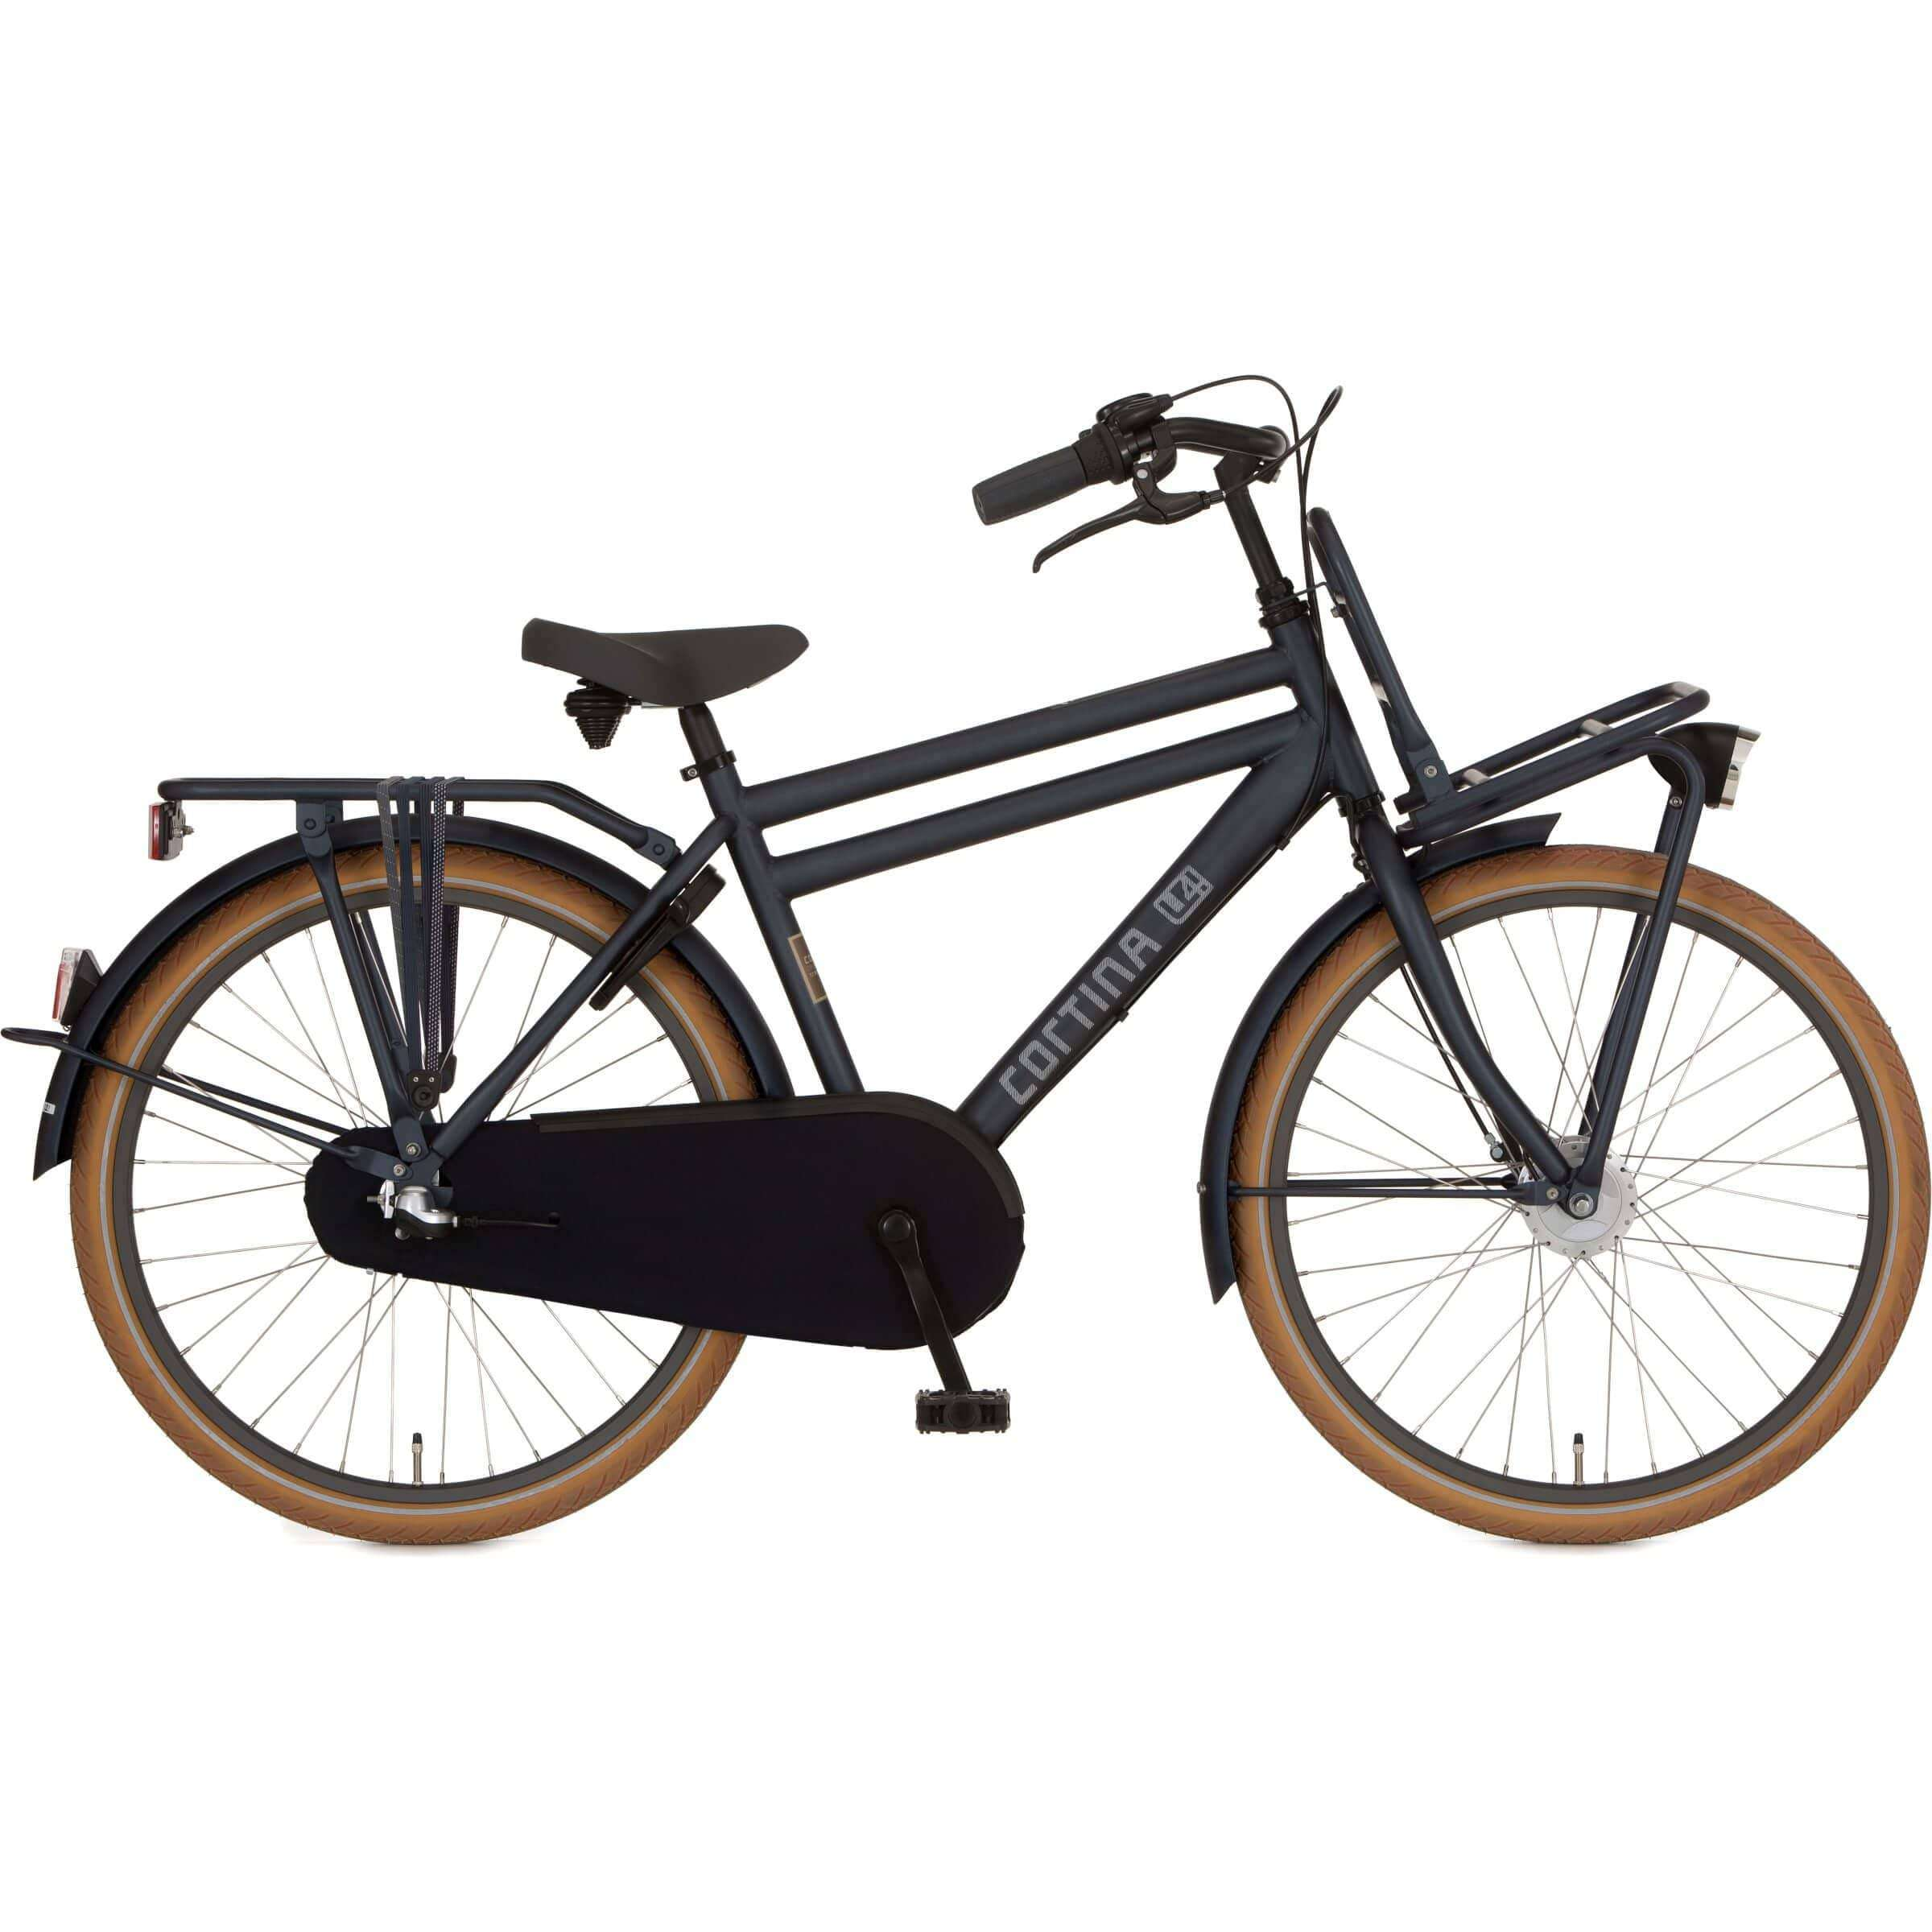 Cortina U4 Transport Mini Denim R3T 24 Inch 2019 Jongens - Fietsenconcurrent.nl